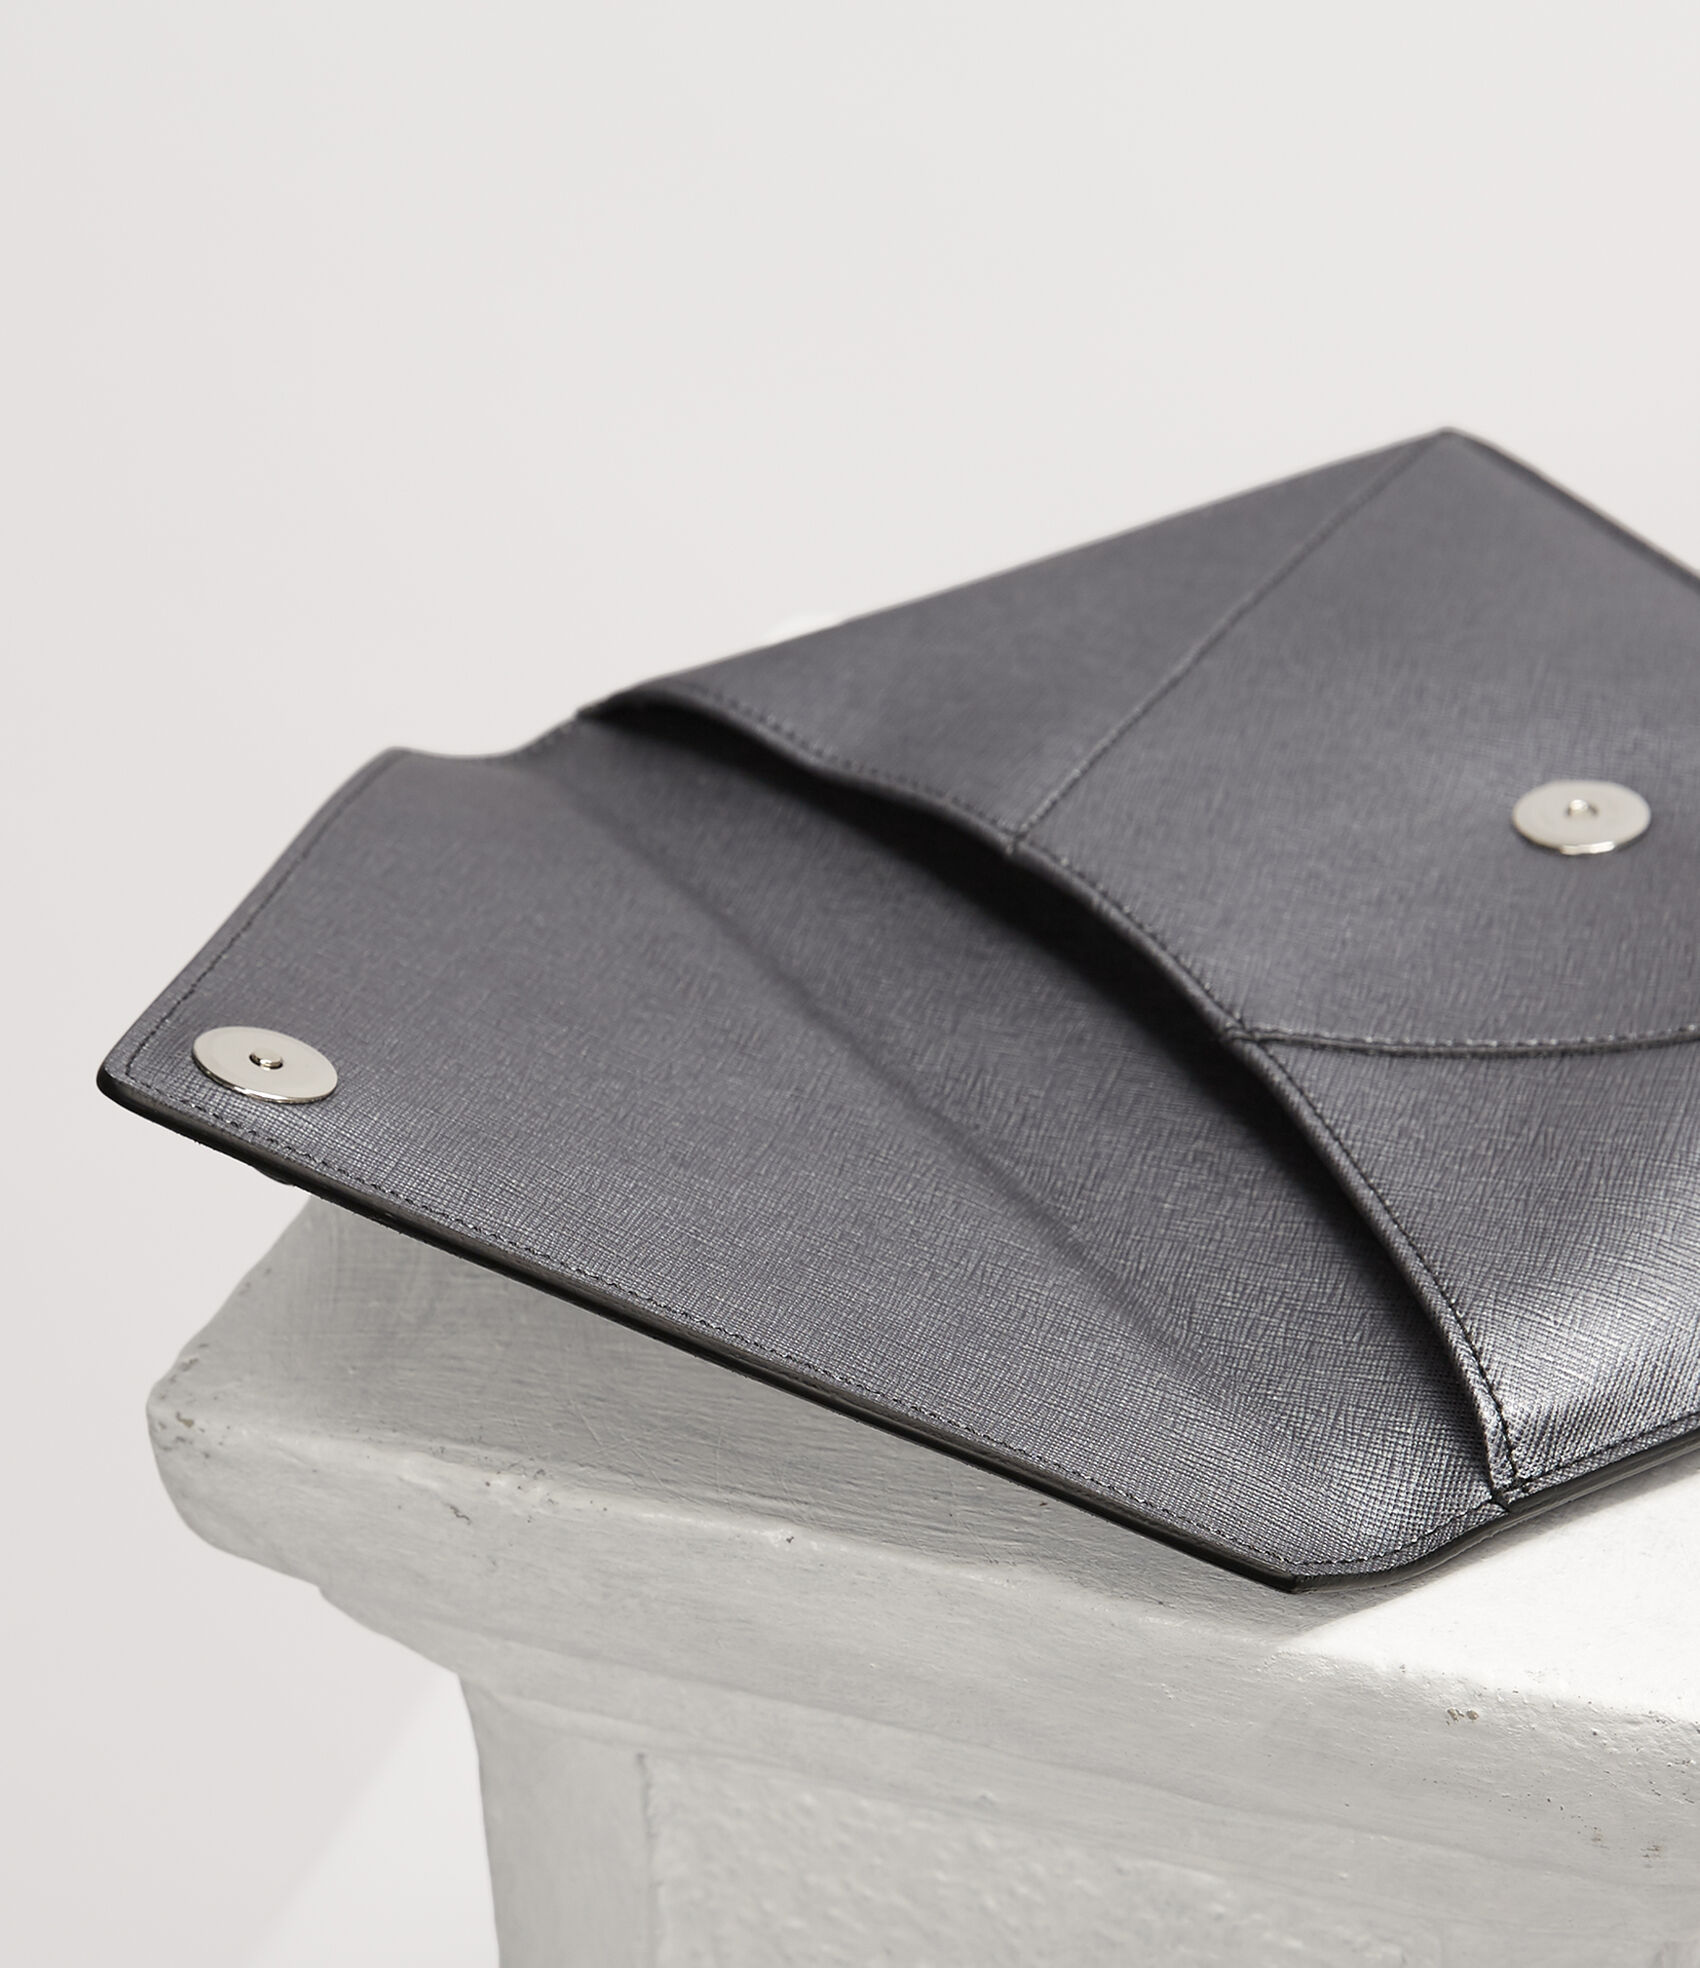 4943b0a3a0 Vivienne Westwood Clutches | Women's bags | Vivienne Westwood - Victoria  Envelope Clutch Anthracite